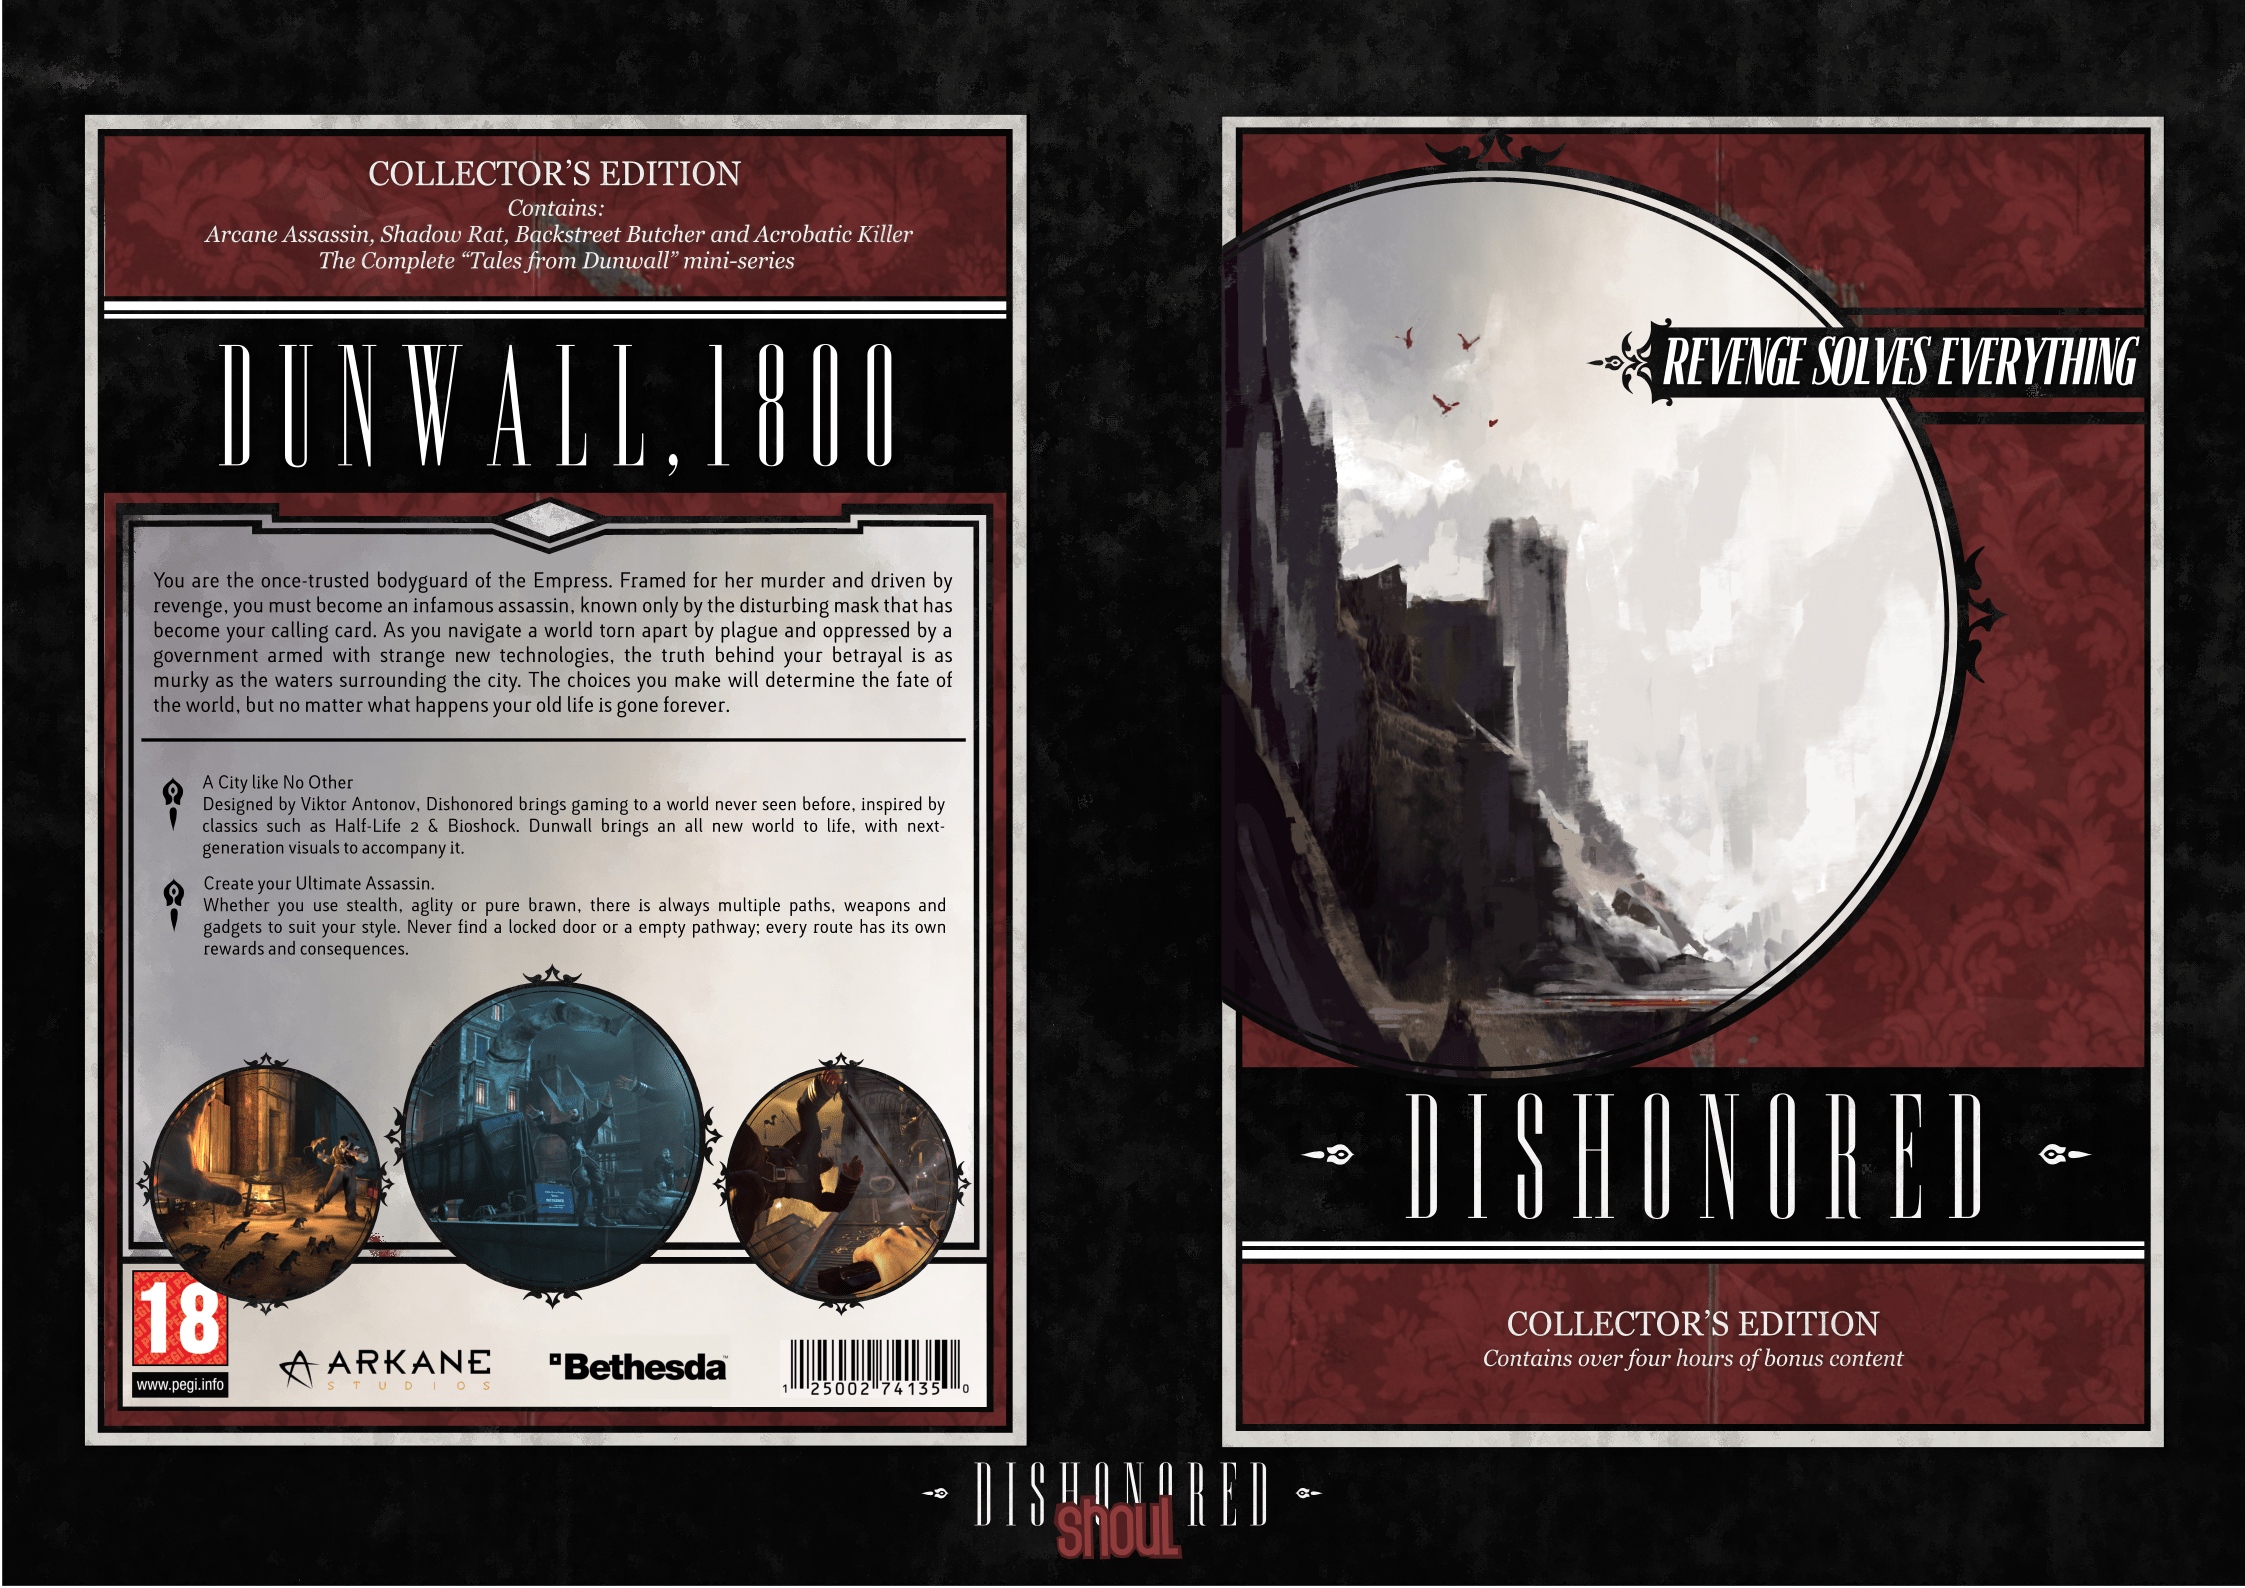 Dishonored PC Box Art Cover By Shoul